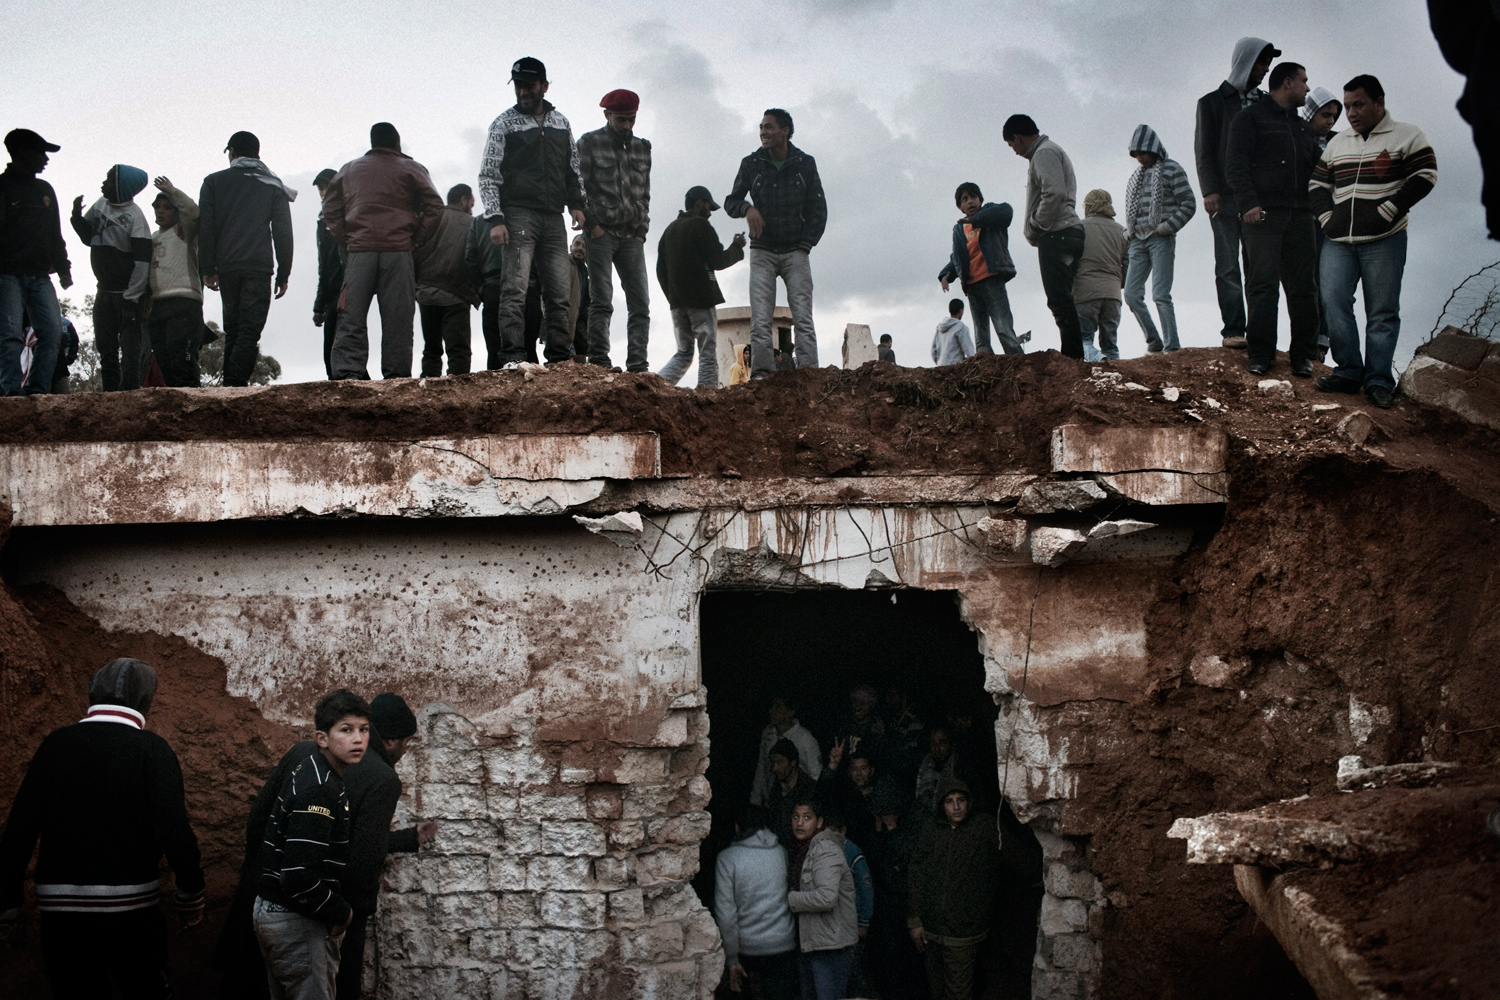 February 24, 2011. Demonstrators drilled into this jail to look for prisoners in a compound belonging to government security forces in Benghazi, Libya.